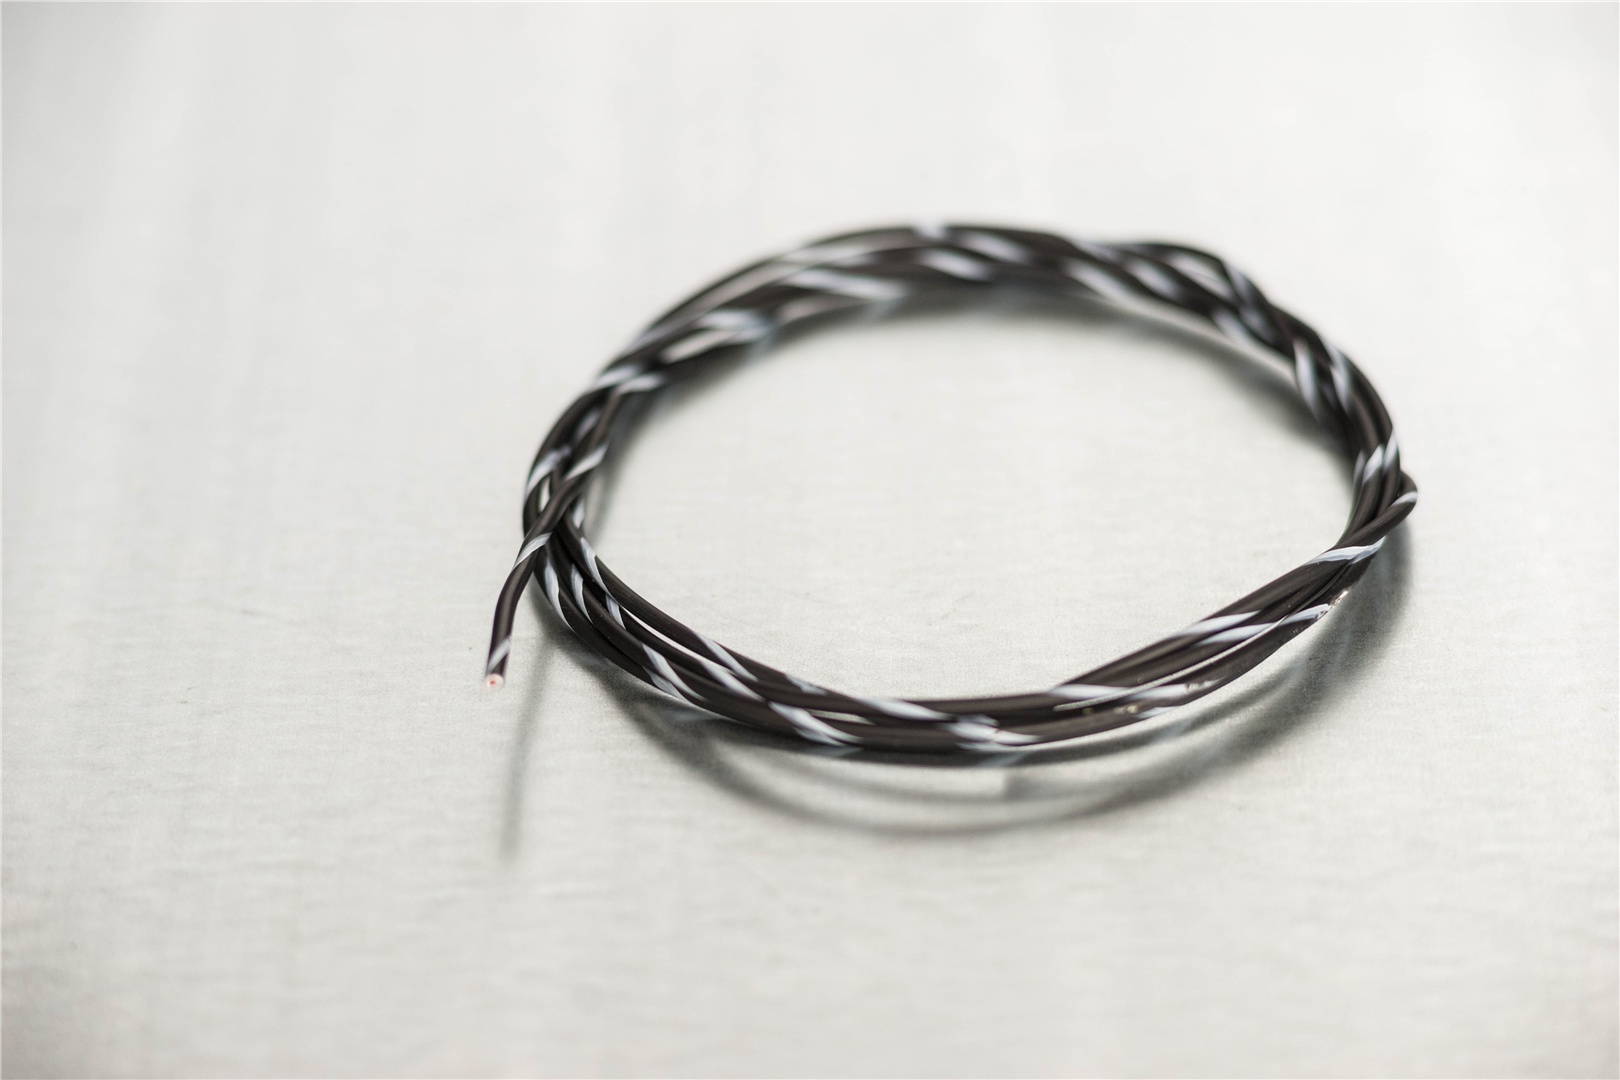 18 Black/White Primary Wire